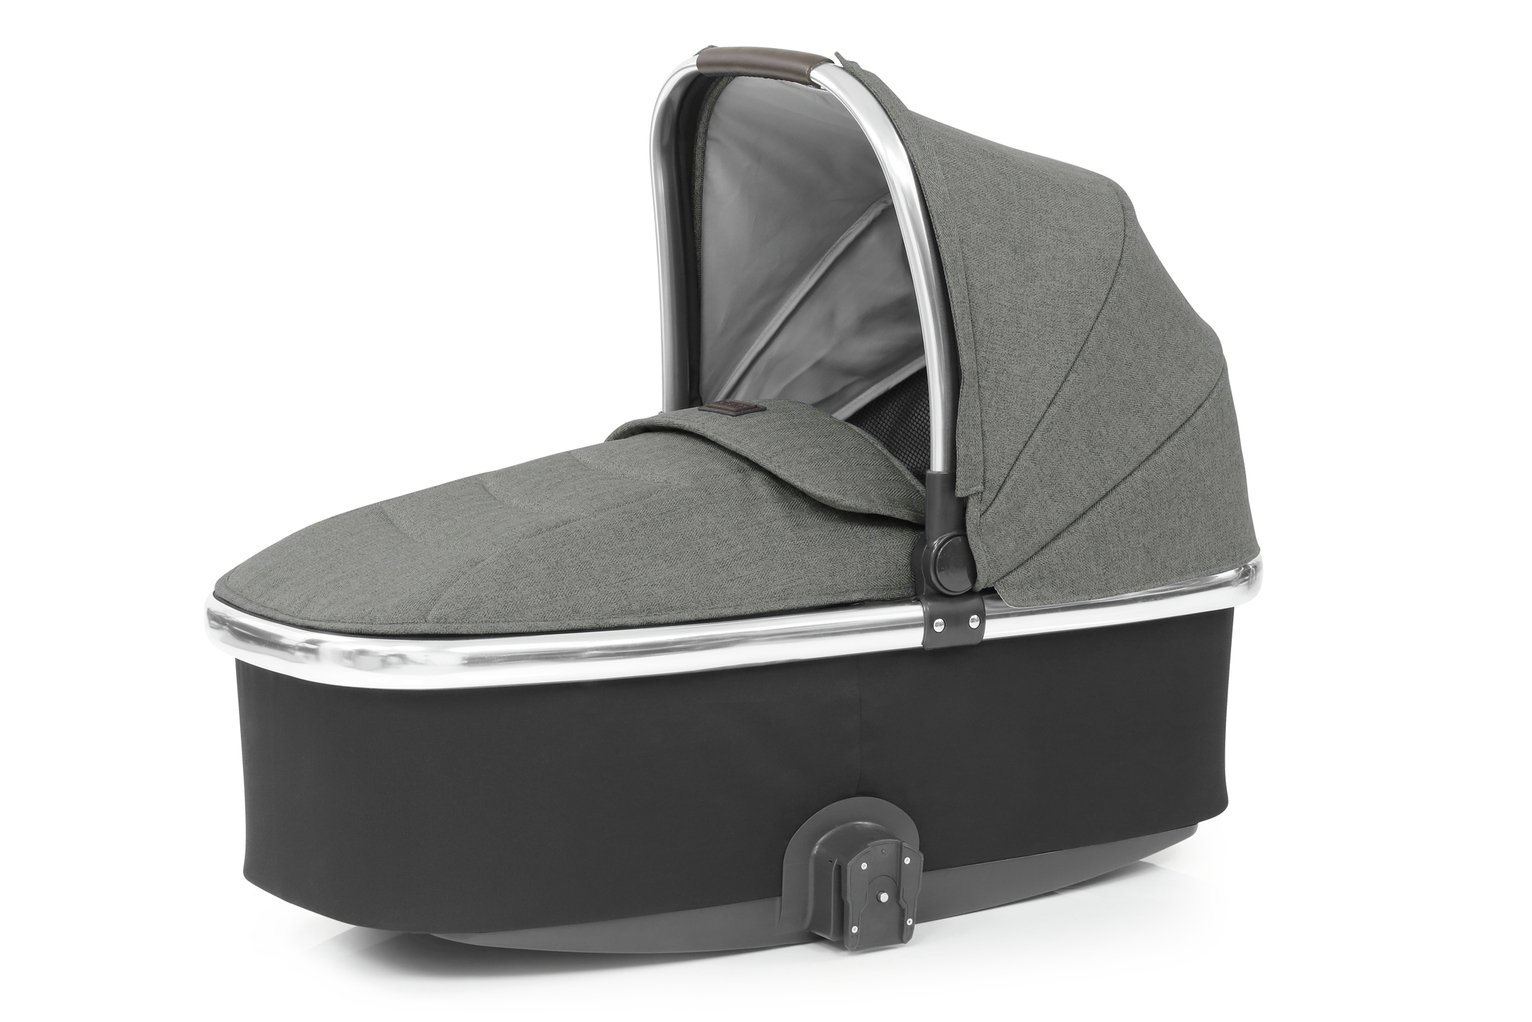 Oyster 3 Carrycot - Mercury